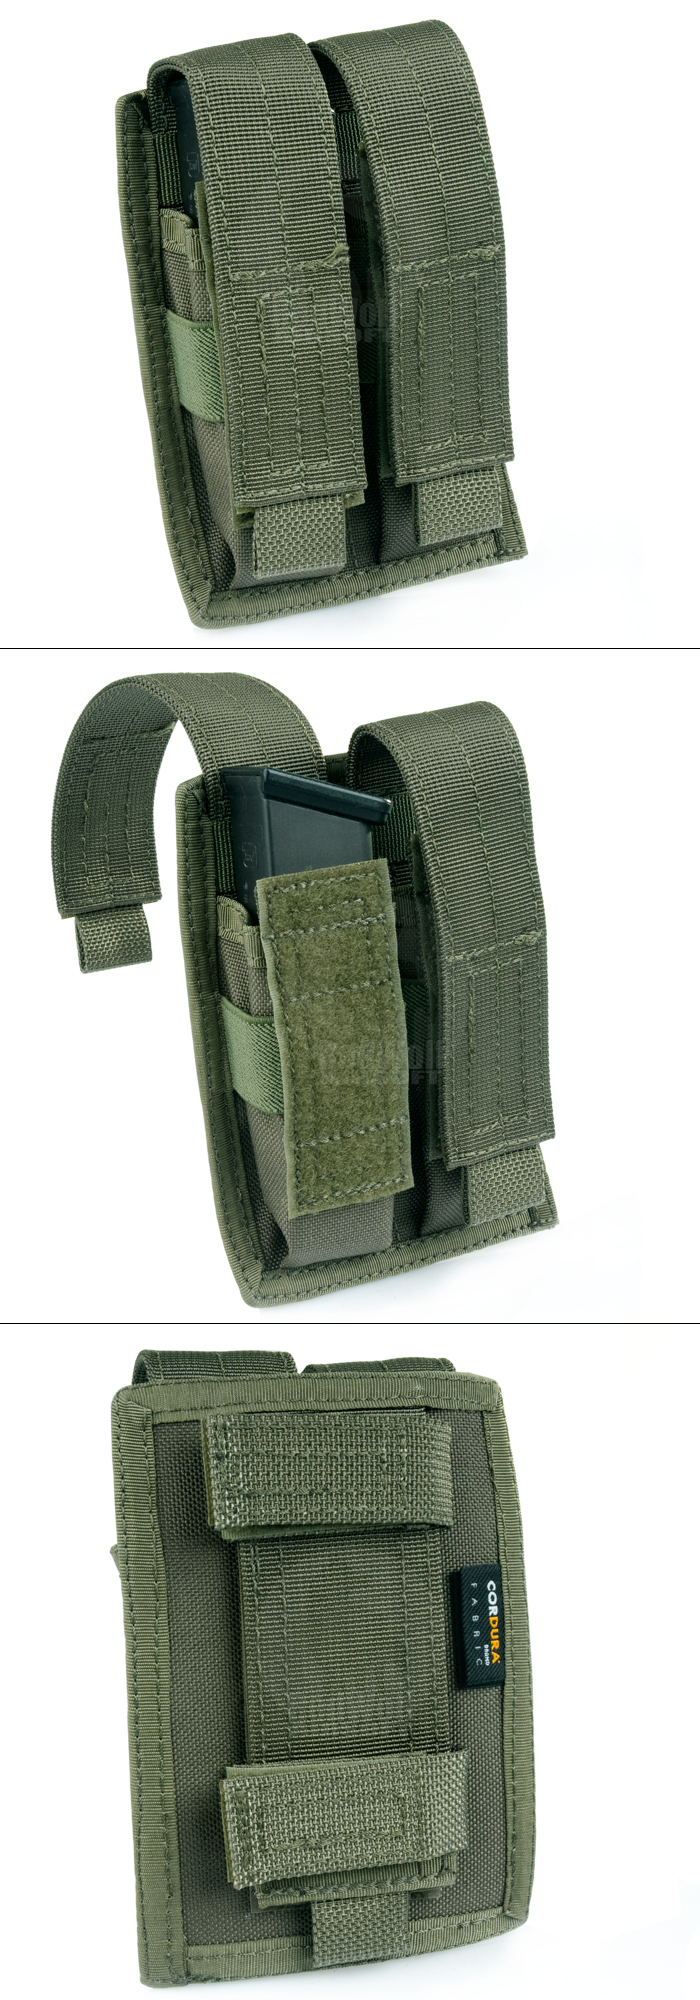 PANTAC MALICE Double Pistol Magazine Pouch (Ranger Green)